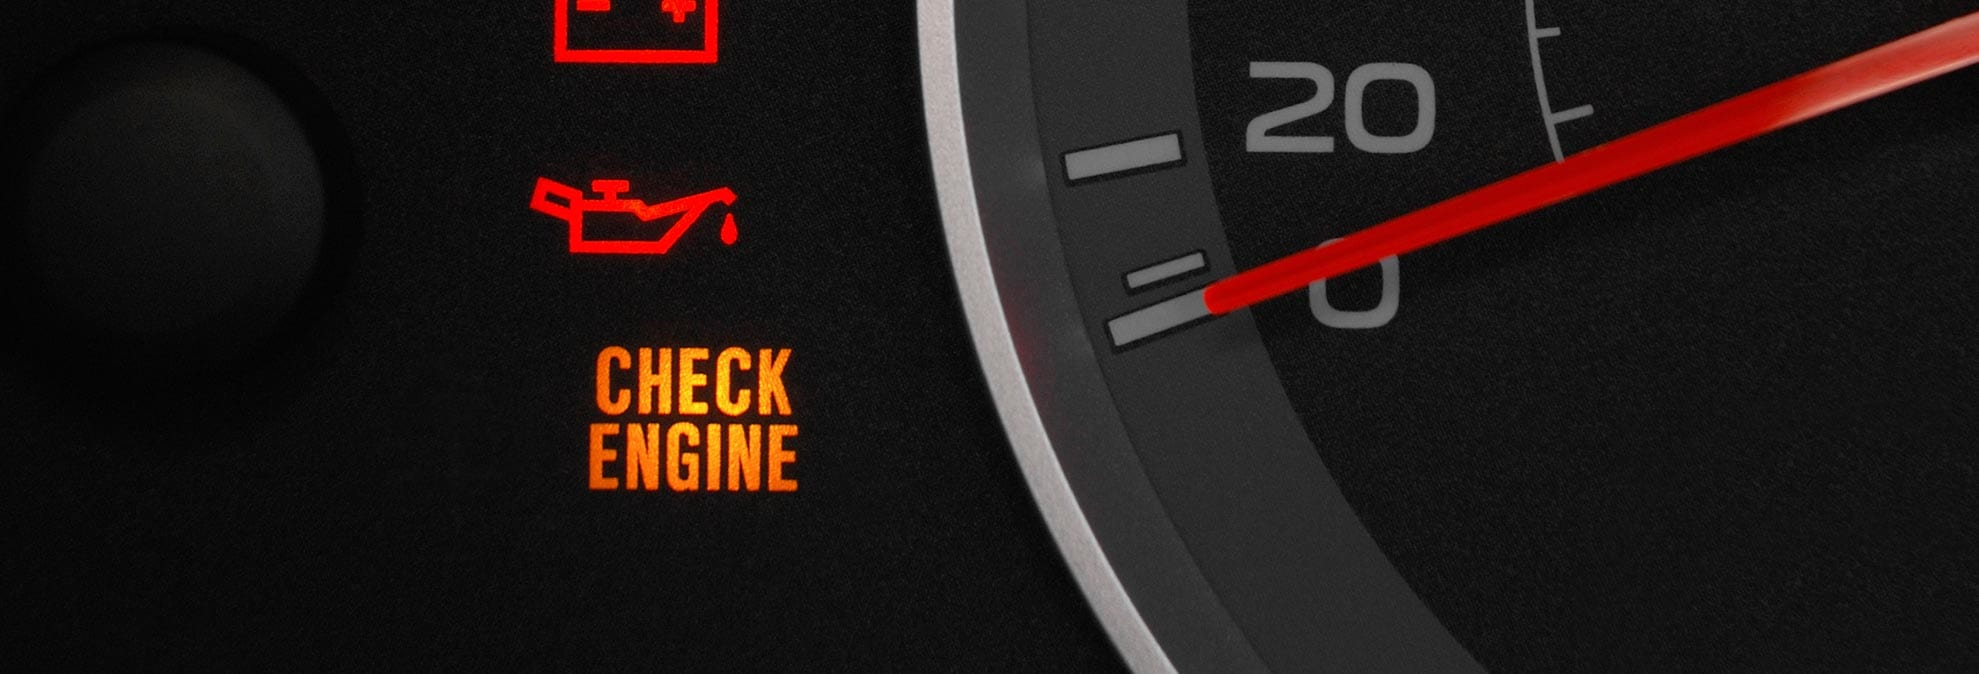 Check Engine Light Means